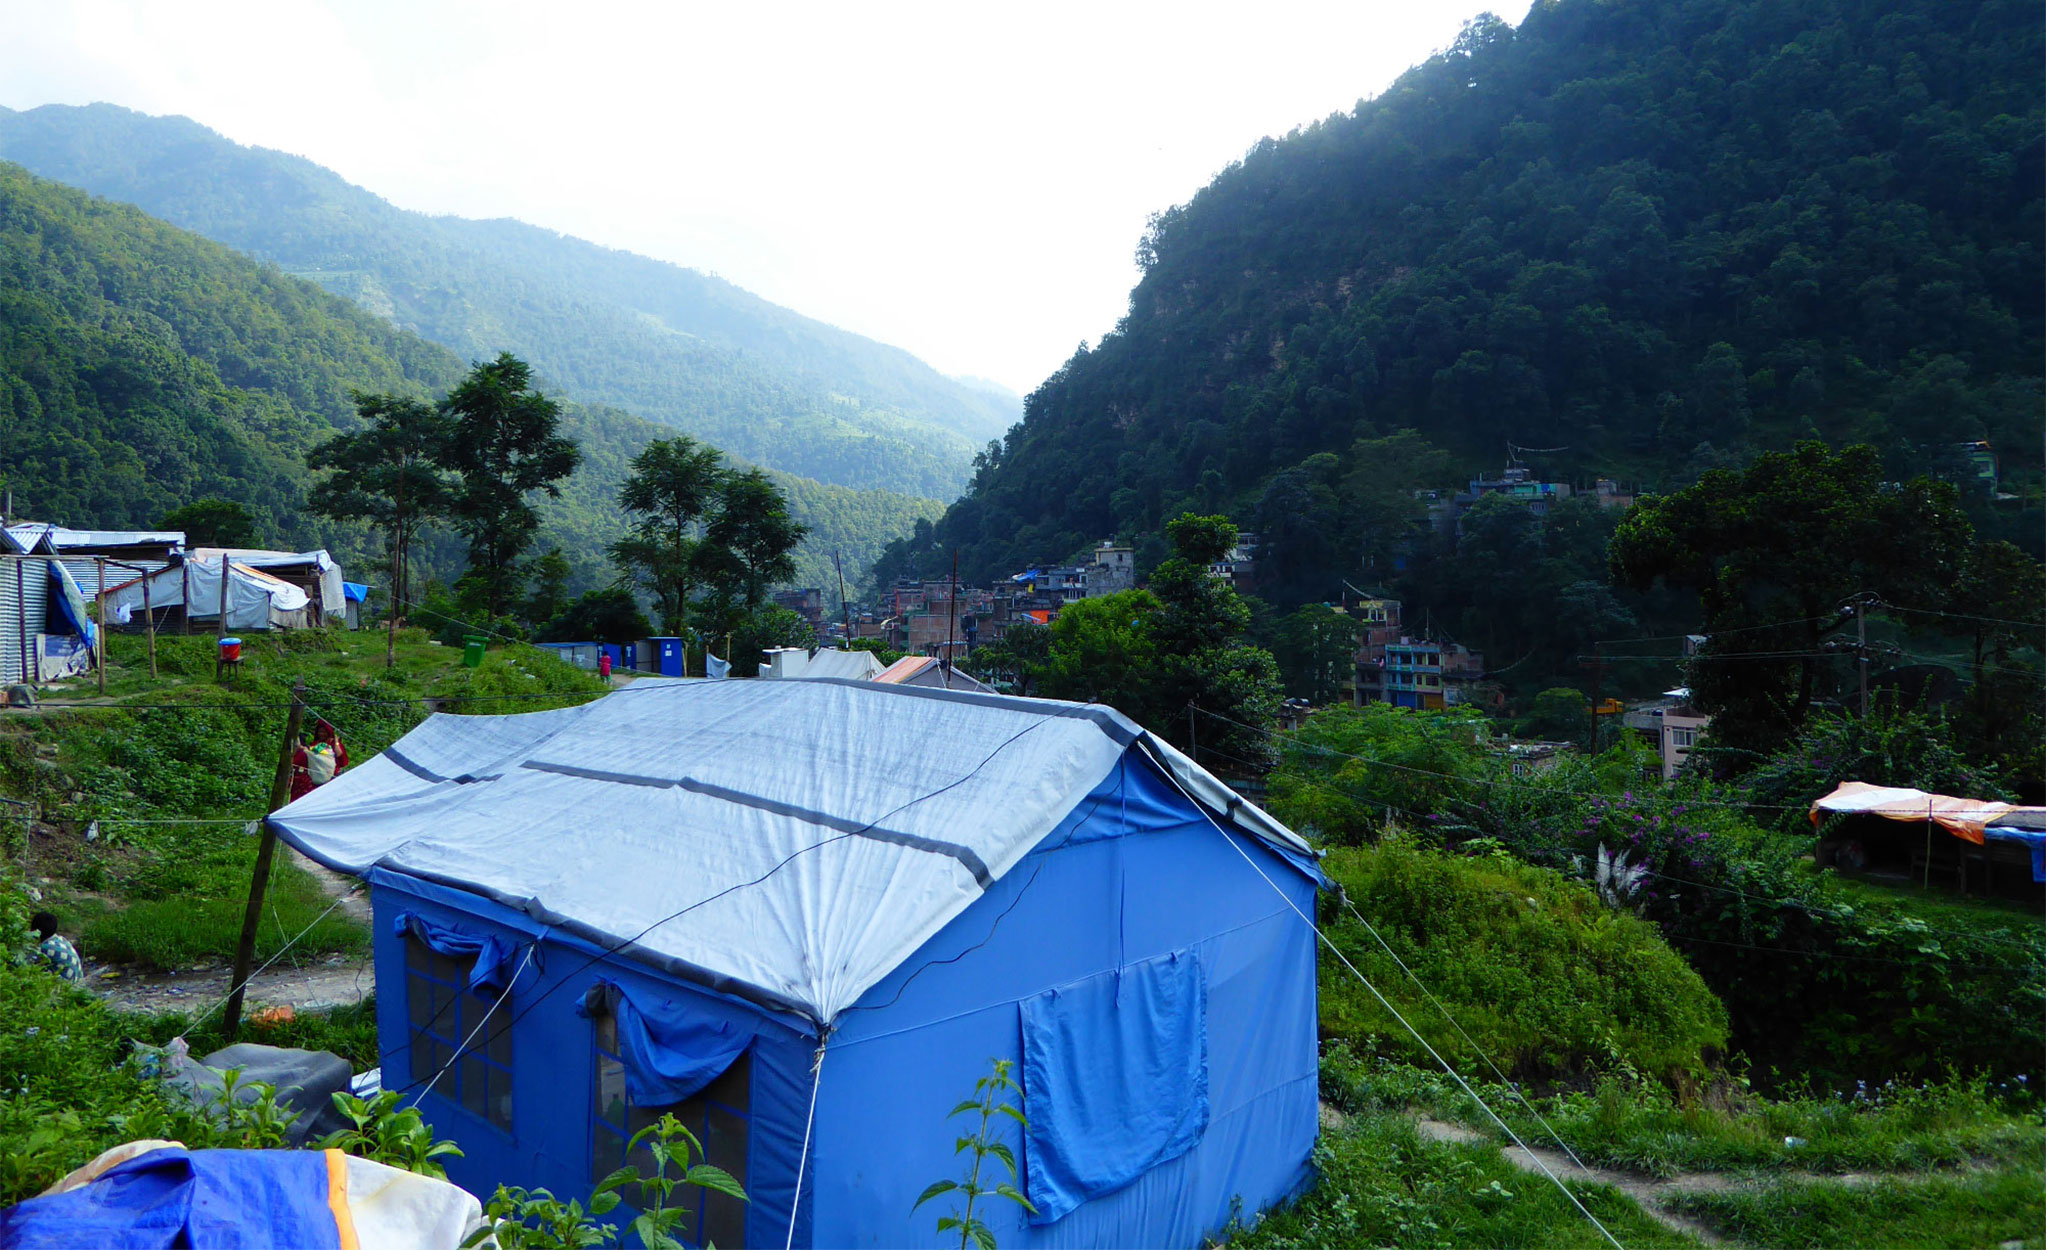 In Sindhupalchok, the district worst affected by the earthquake, thousands still live in temporary shelters. This is one such camp in Bahrabise, close to the Chinese border. Photo: Patrick Ward